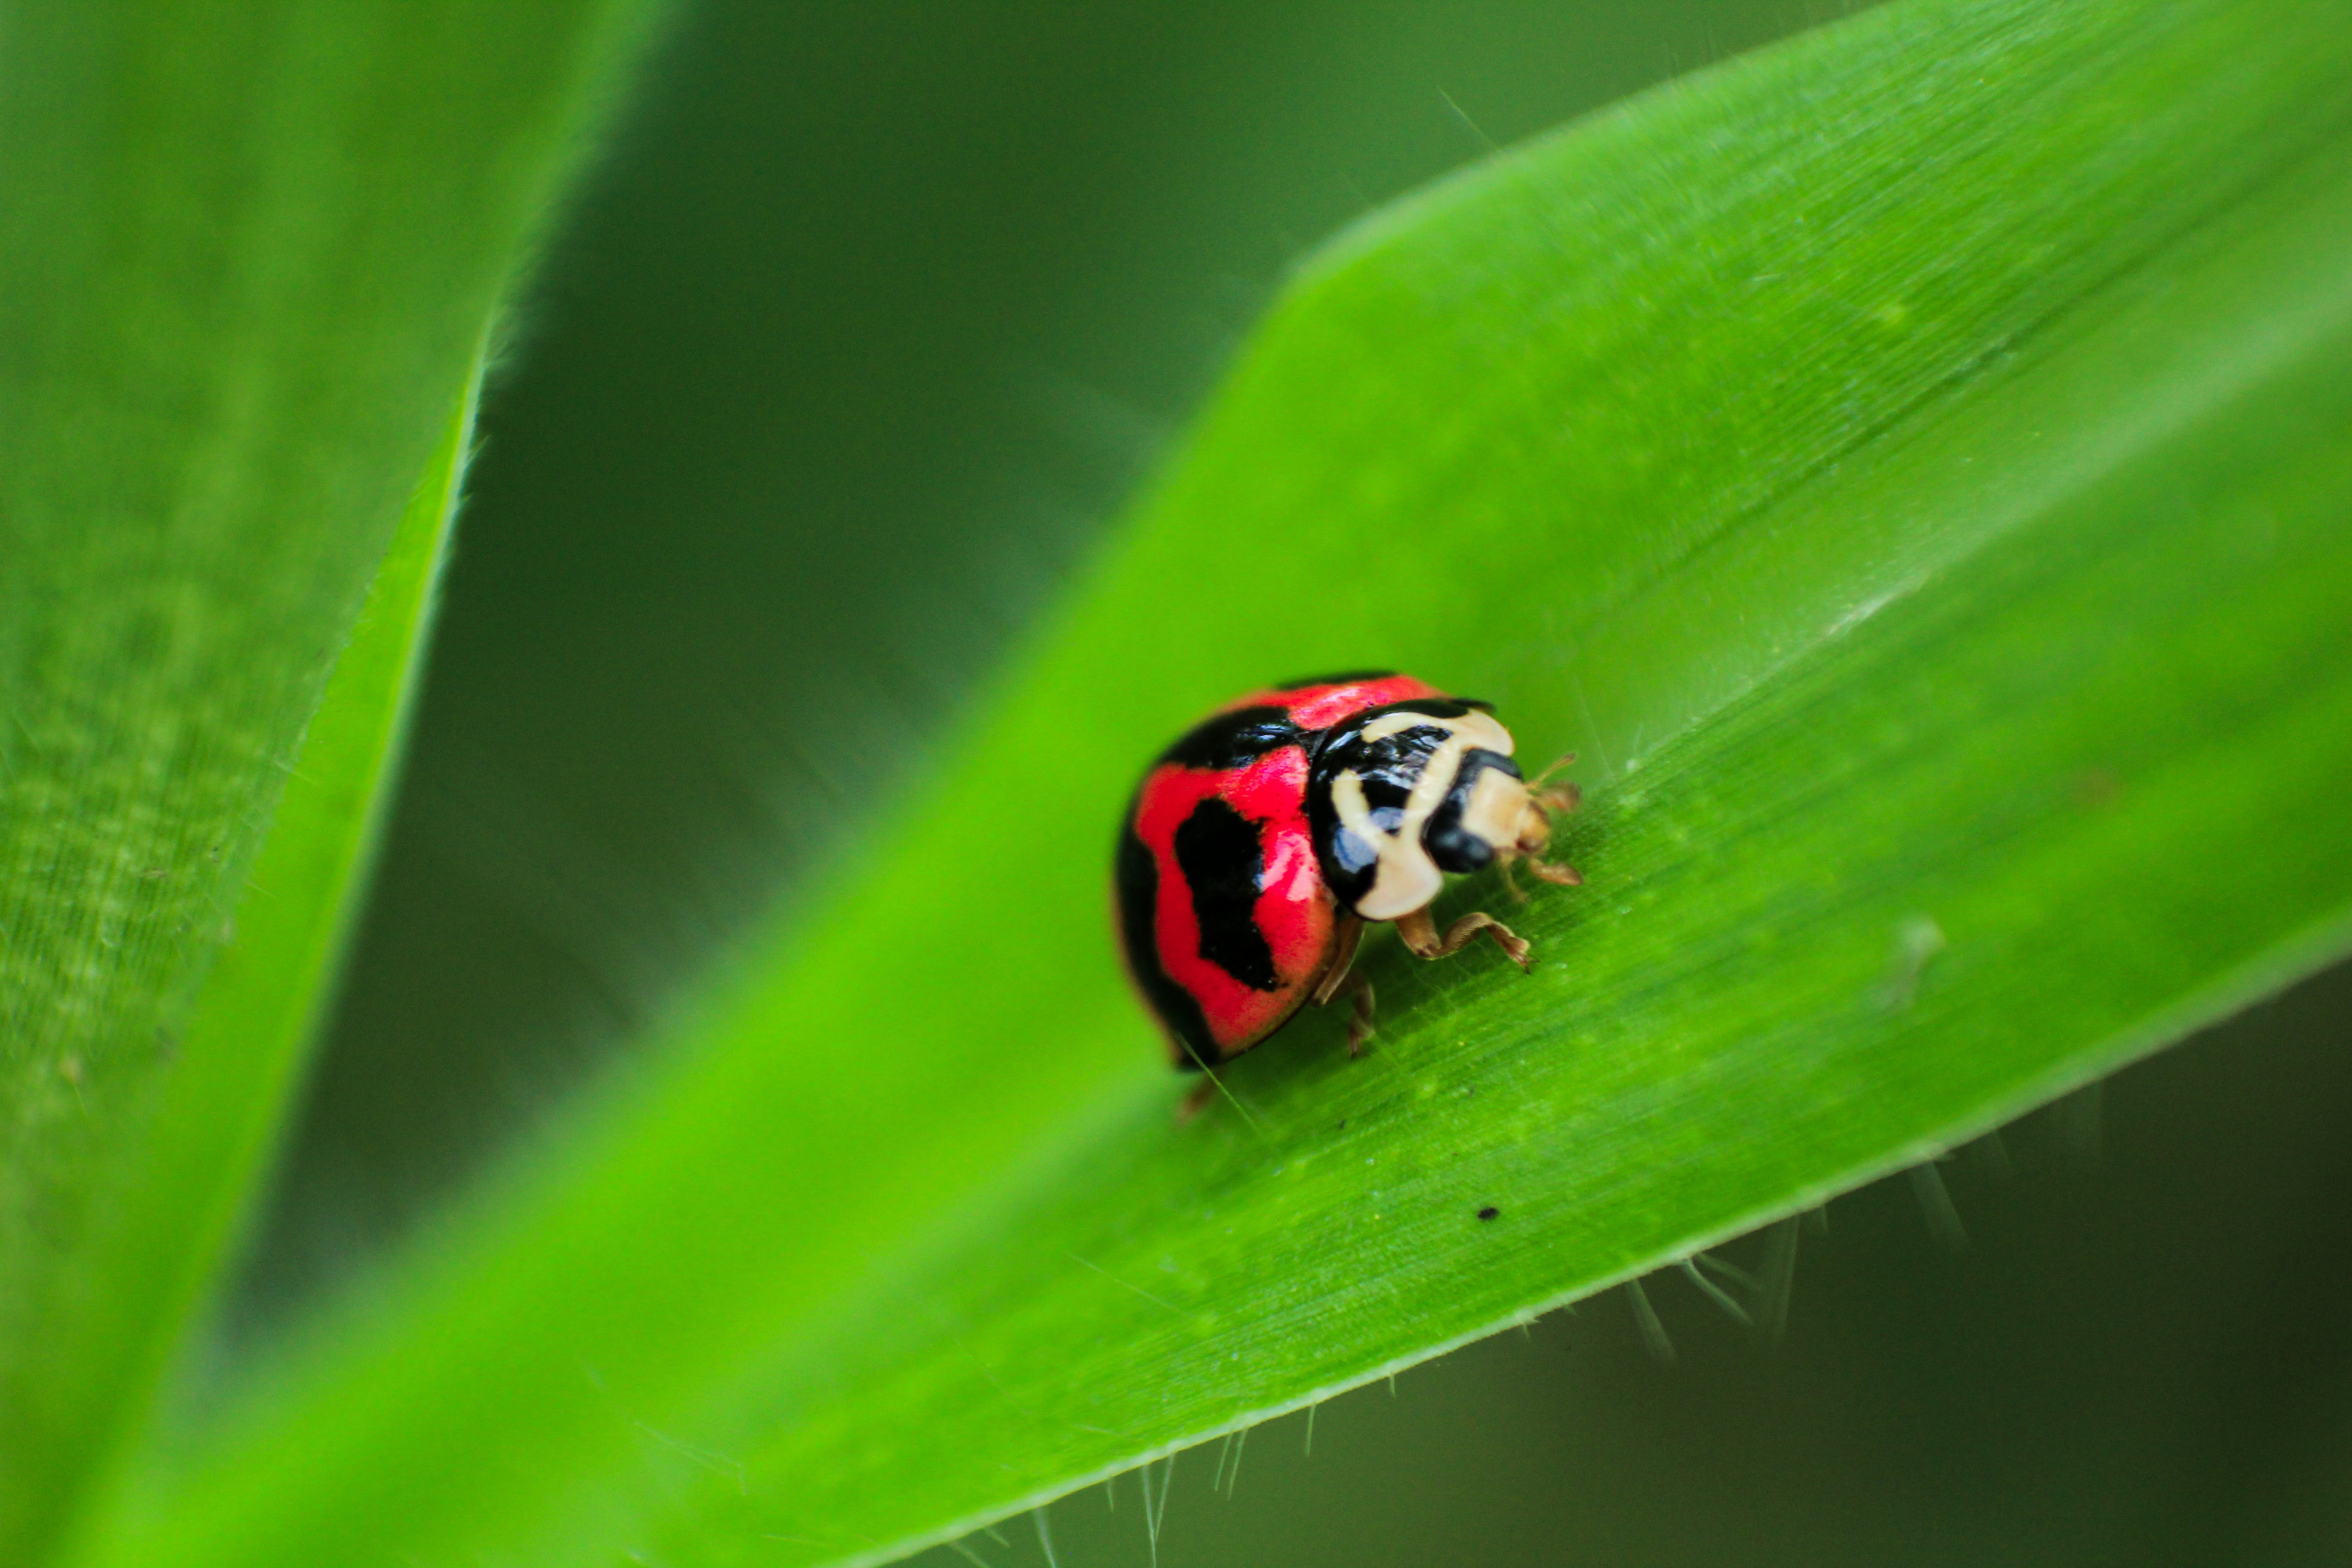 Black and Red Ladybug on Green Leaf